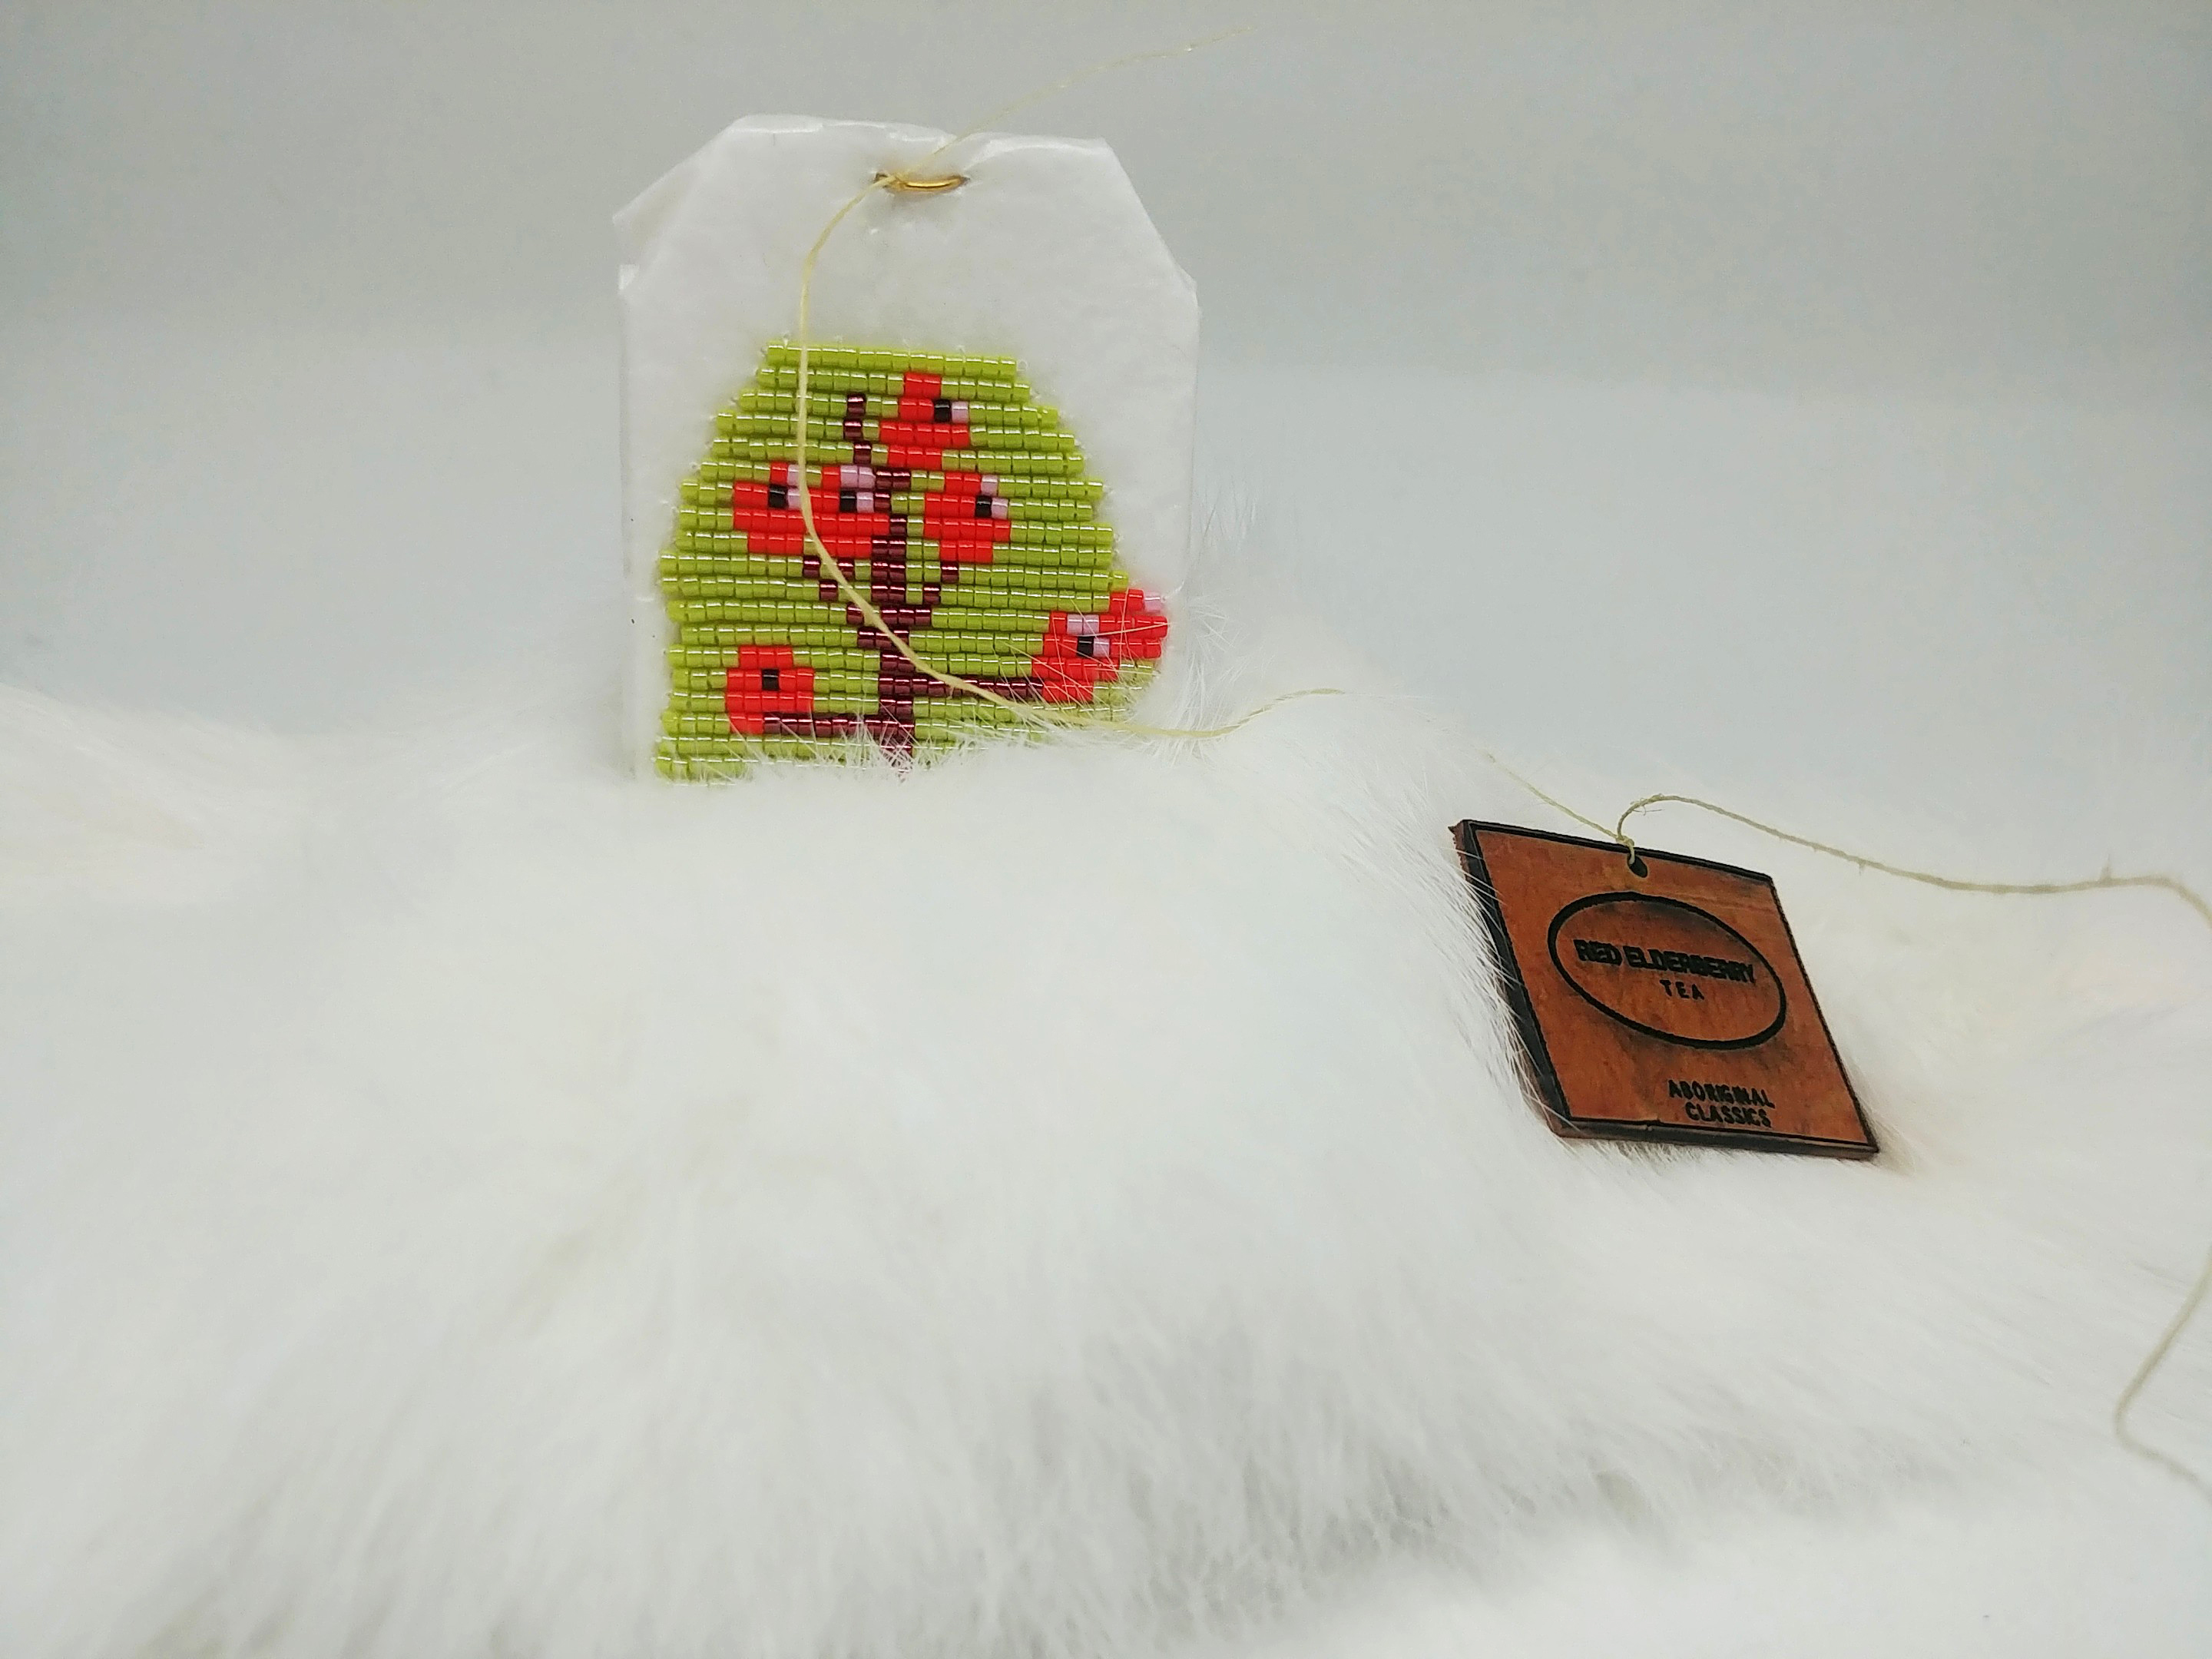 Art by Catherine Blackburn - a tea bag encrusted with red and green beads on a fur blanket